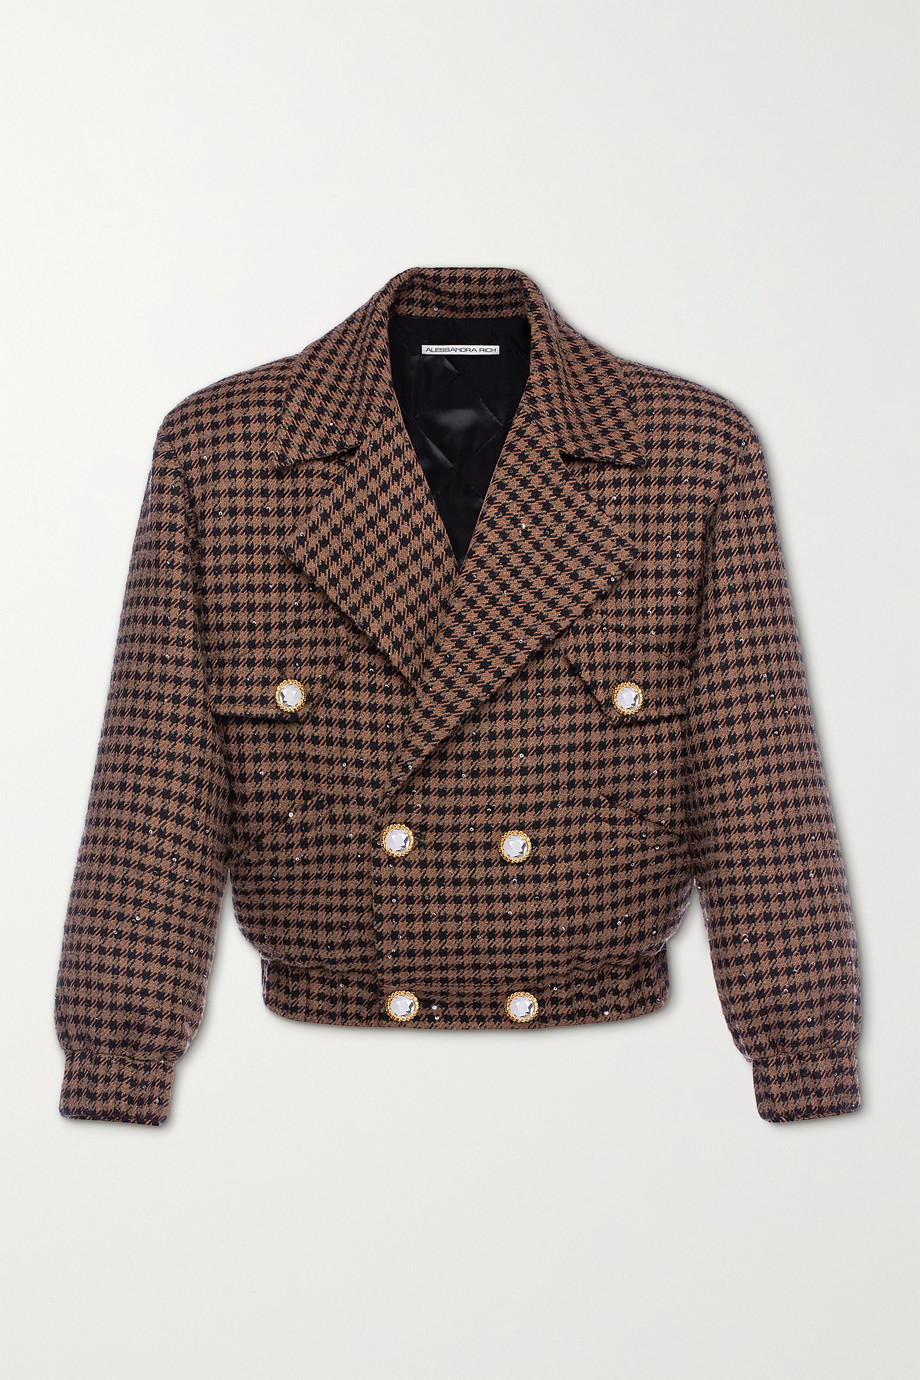 Alessandra Rich Vichy embellished houndstooth tweed bomber jacket